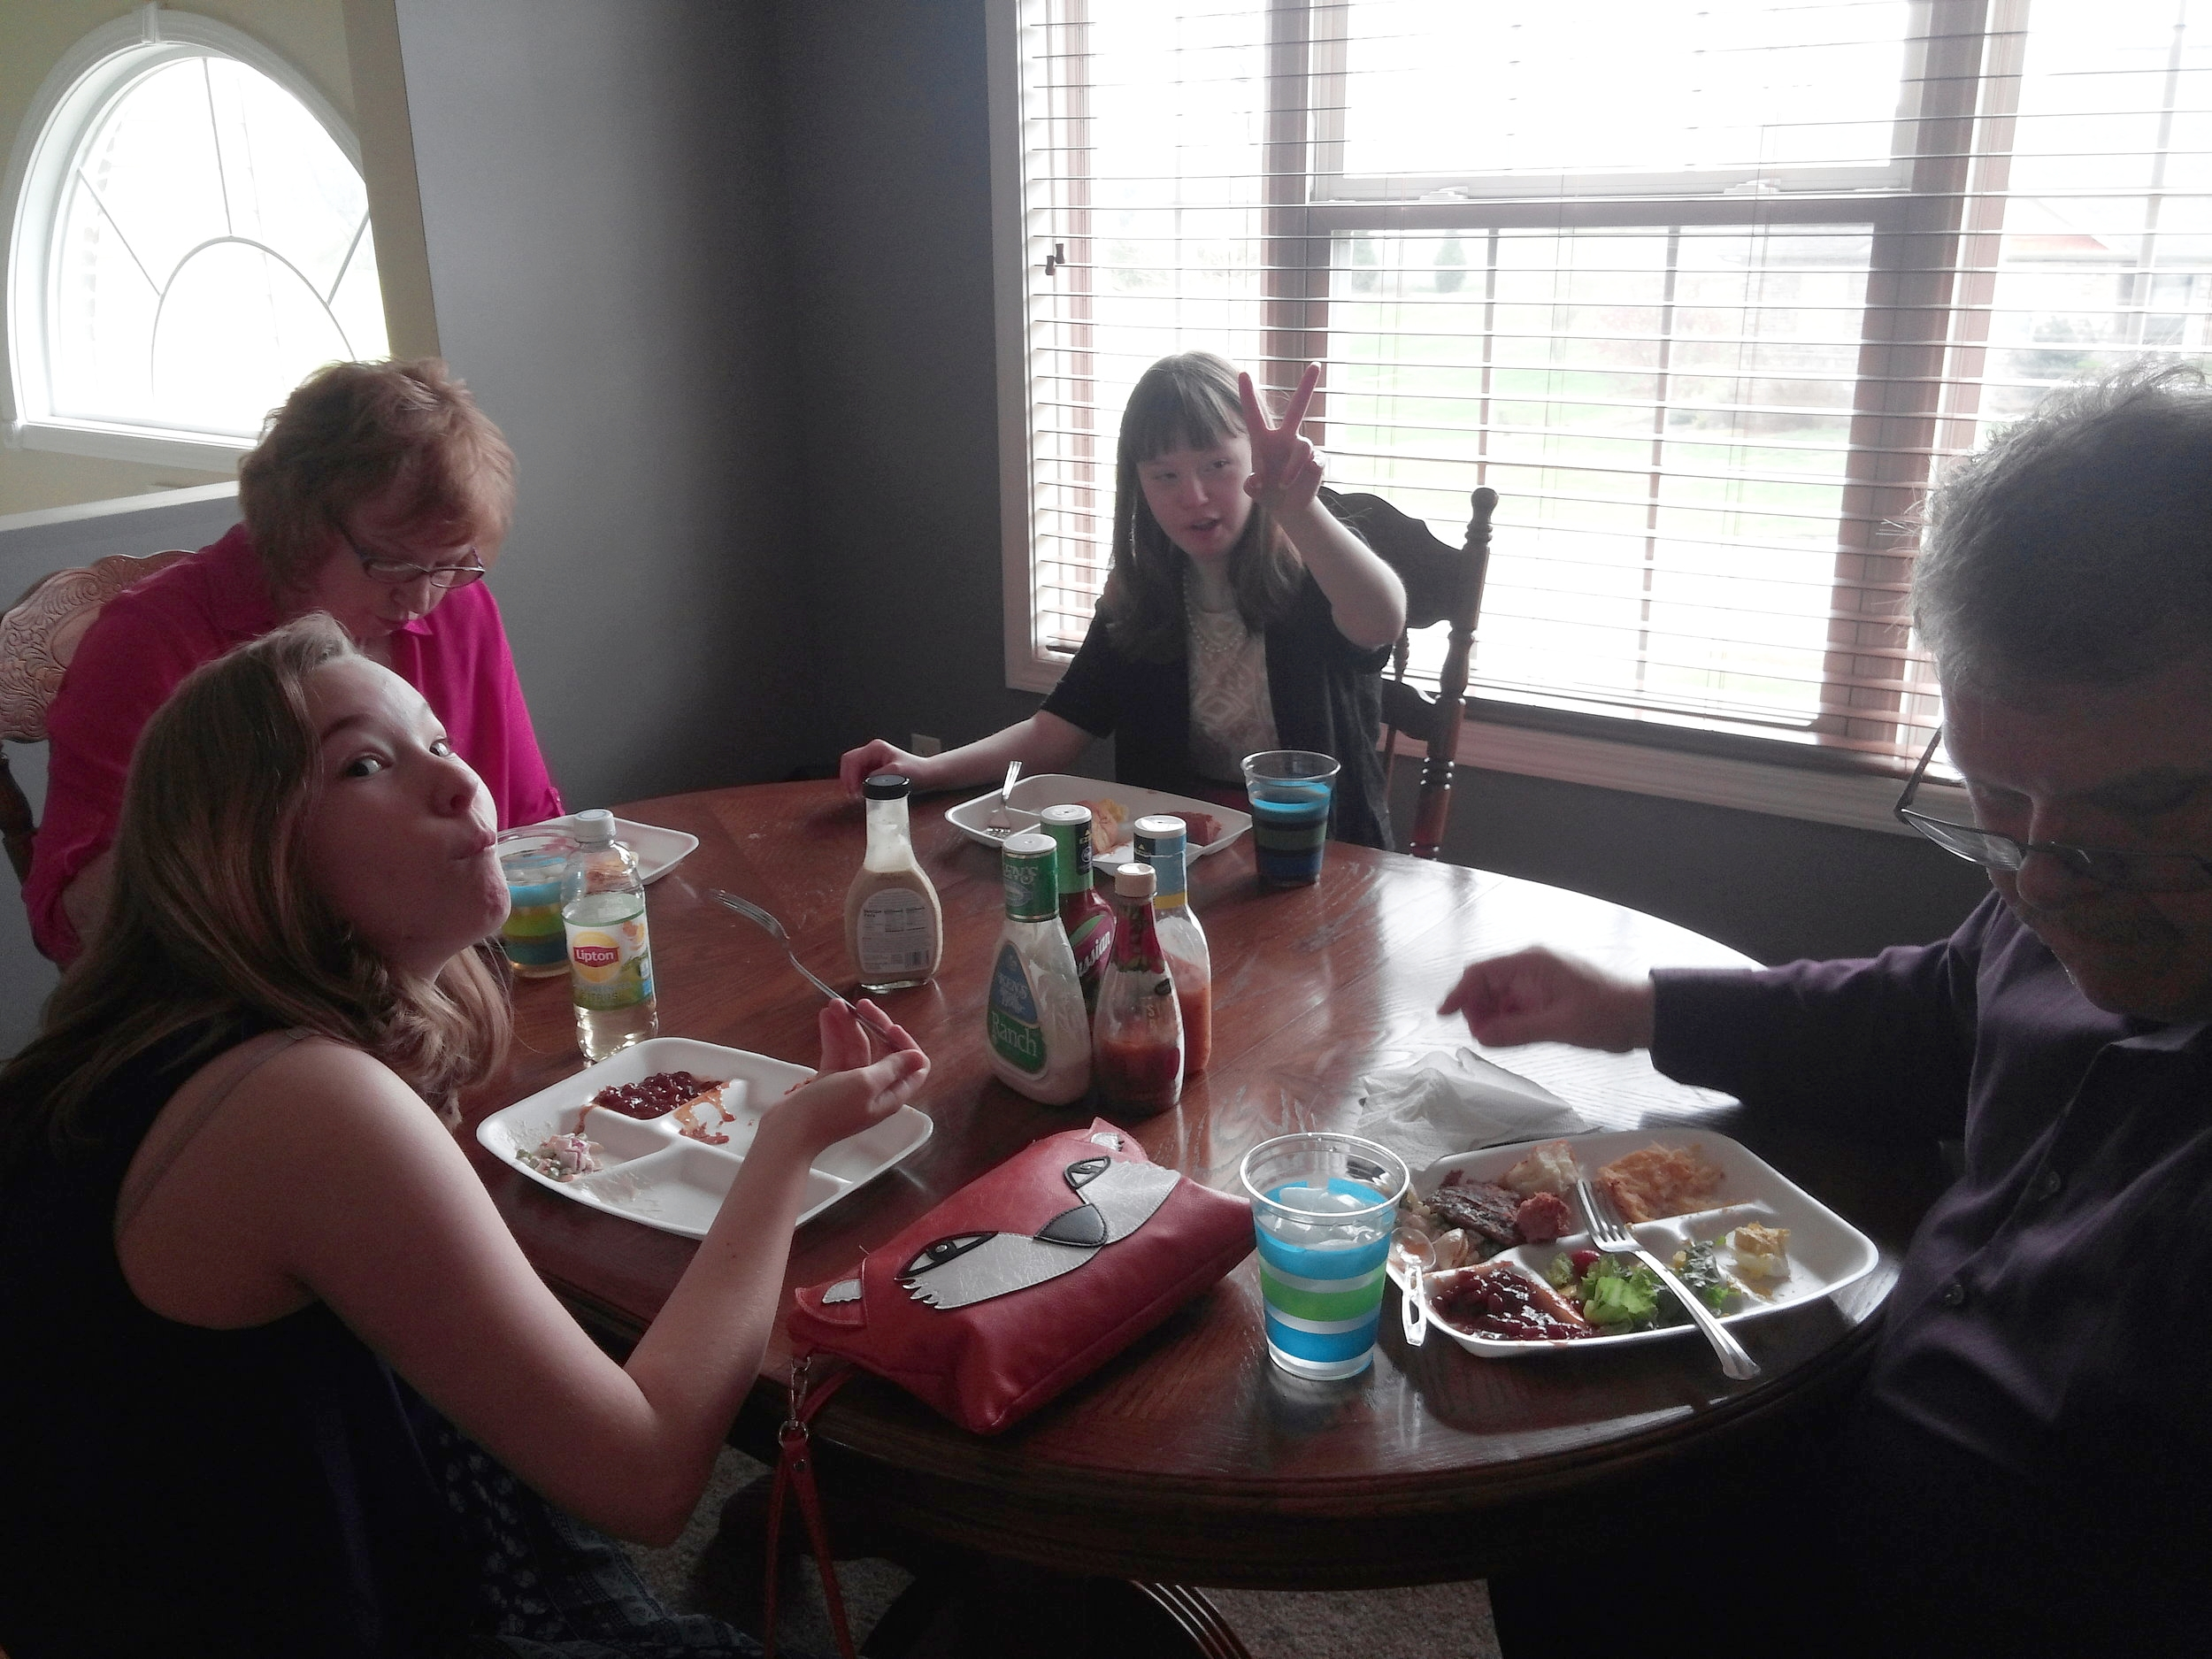 The family chowing down on Easter dinner, 2016